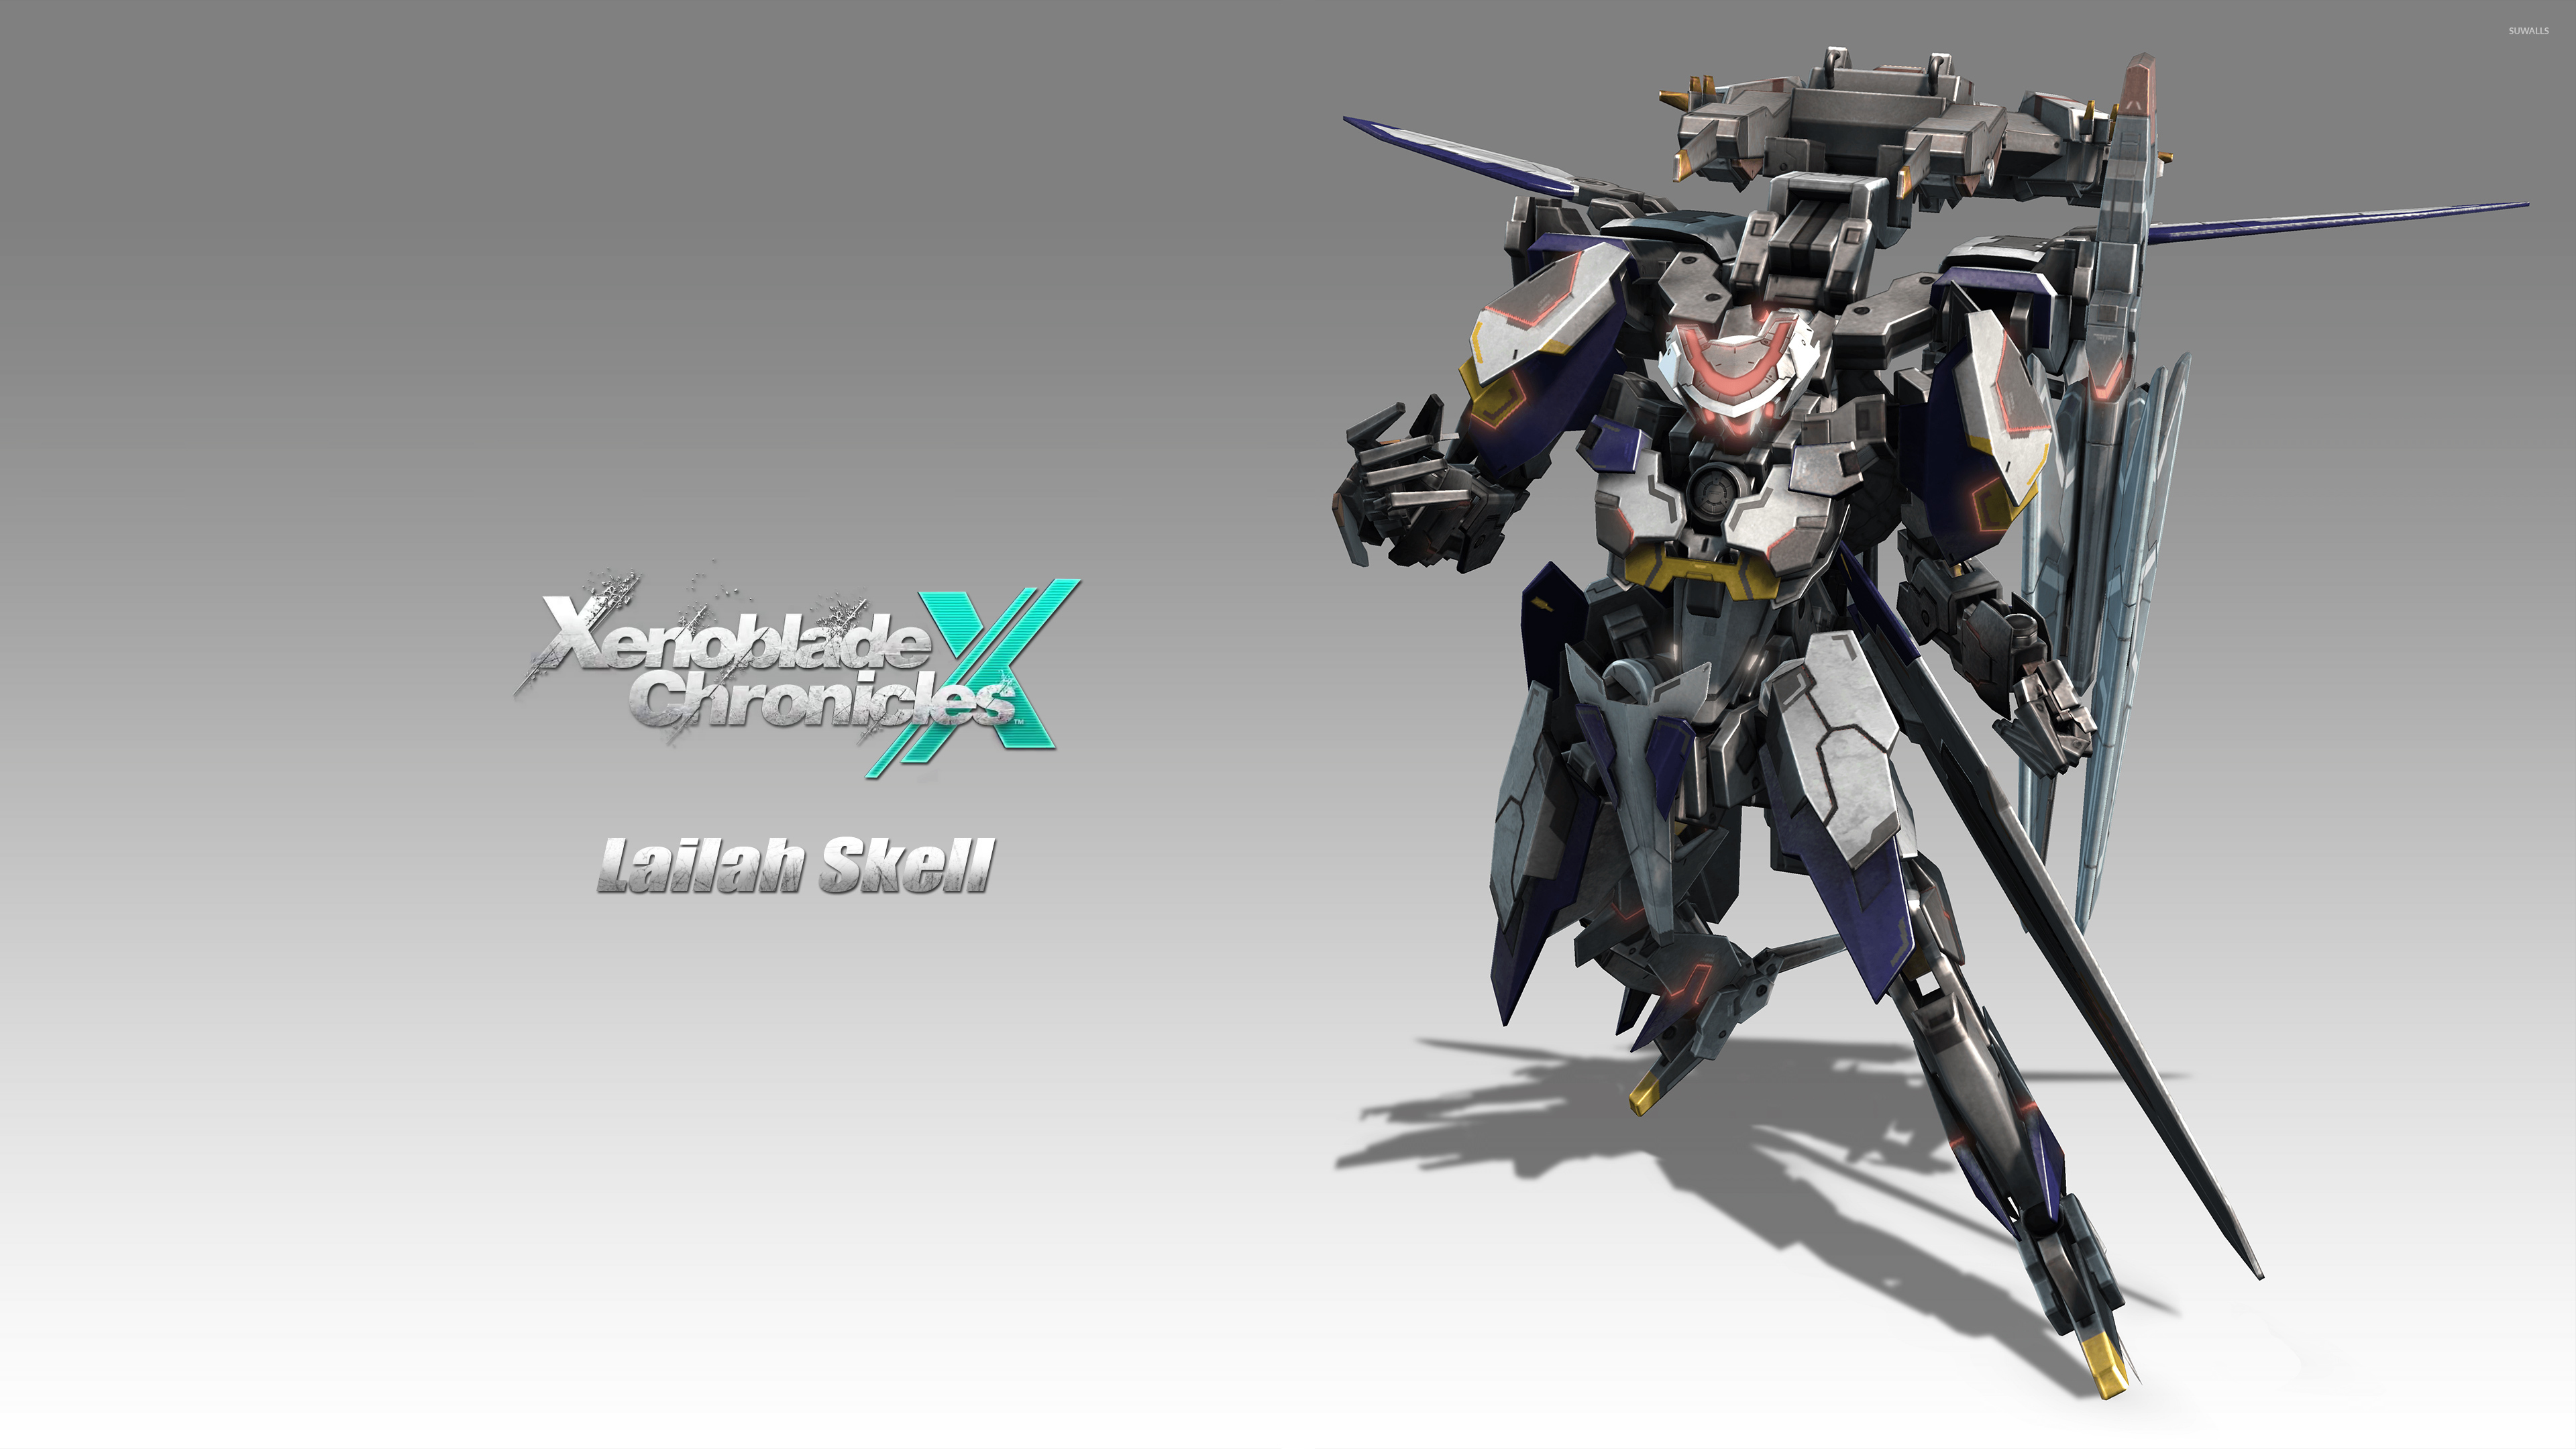 Lailah Skell Xenoblade Chronicles X Wallpaper Game Wallpapers